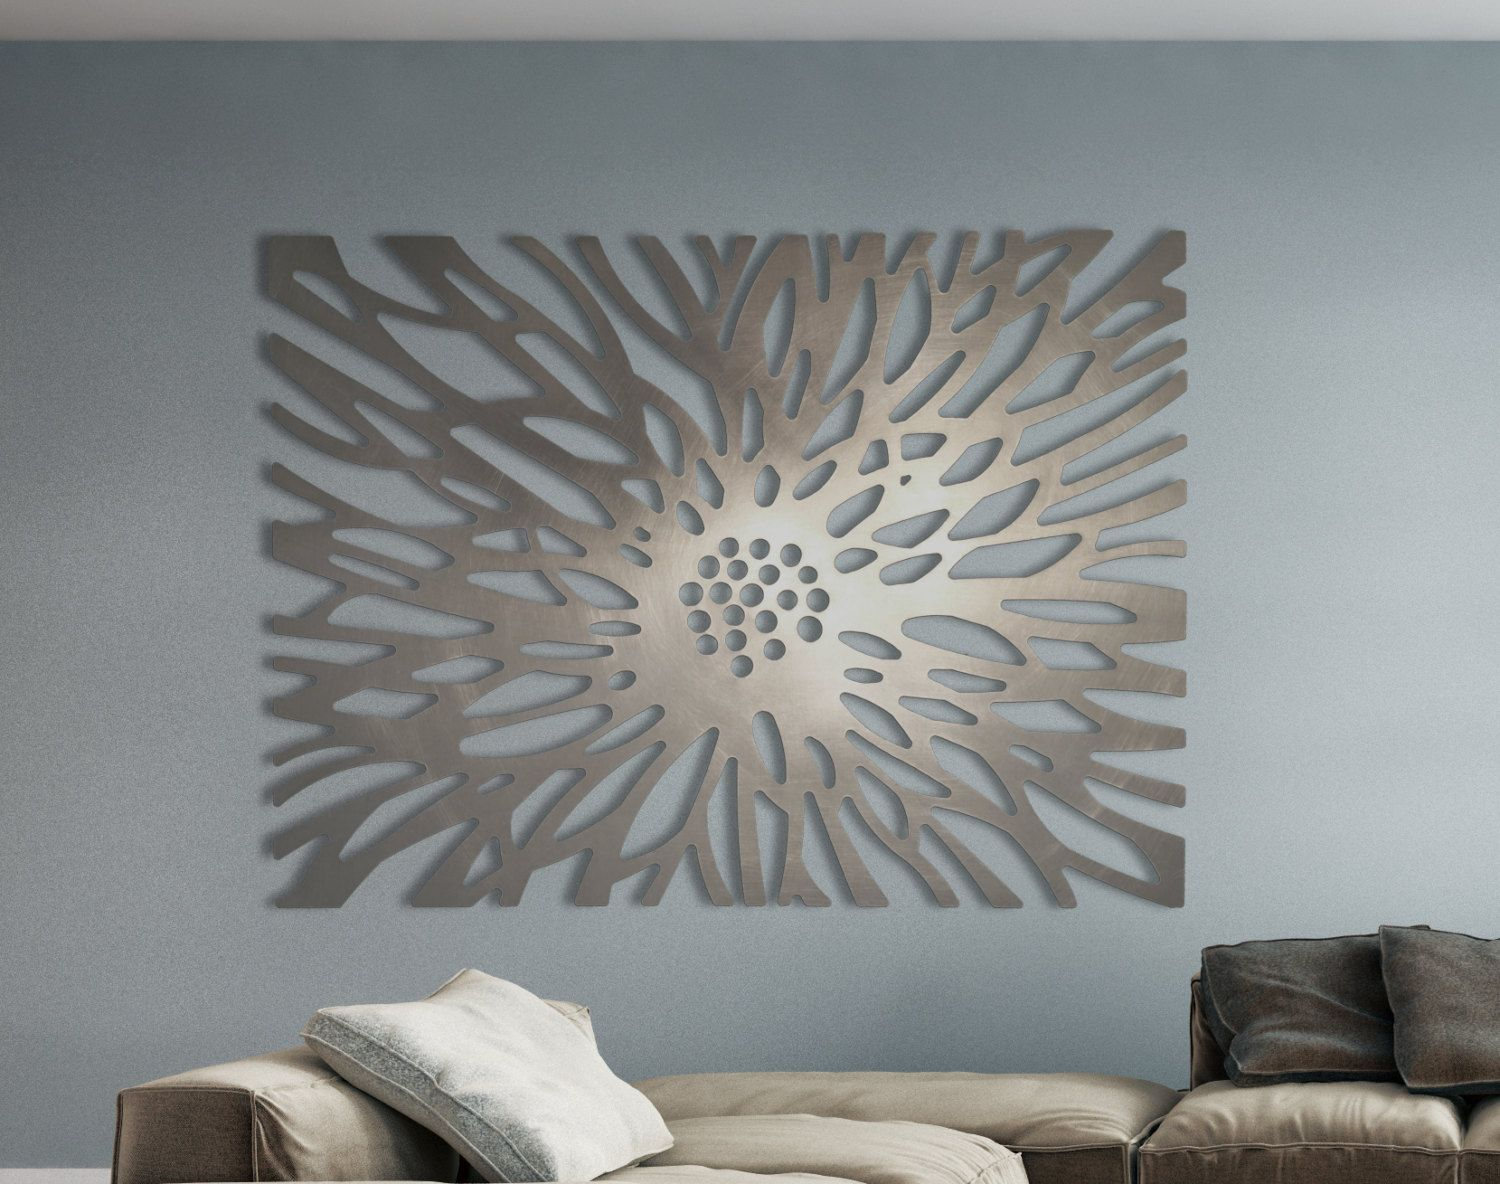 Flowerburst this is a limited edition custom laser cut aluminum laser cut metal decorative wall art panel sculpture for home office indoor or outdoor use flowerburst amipublicfo Gallery